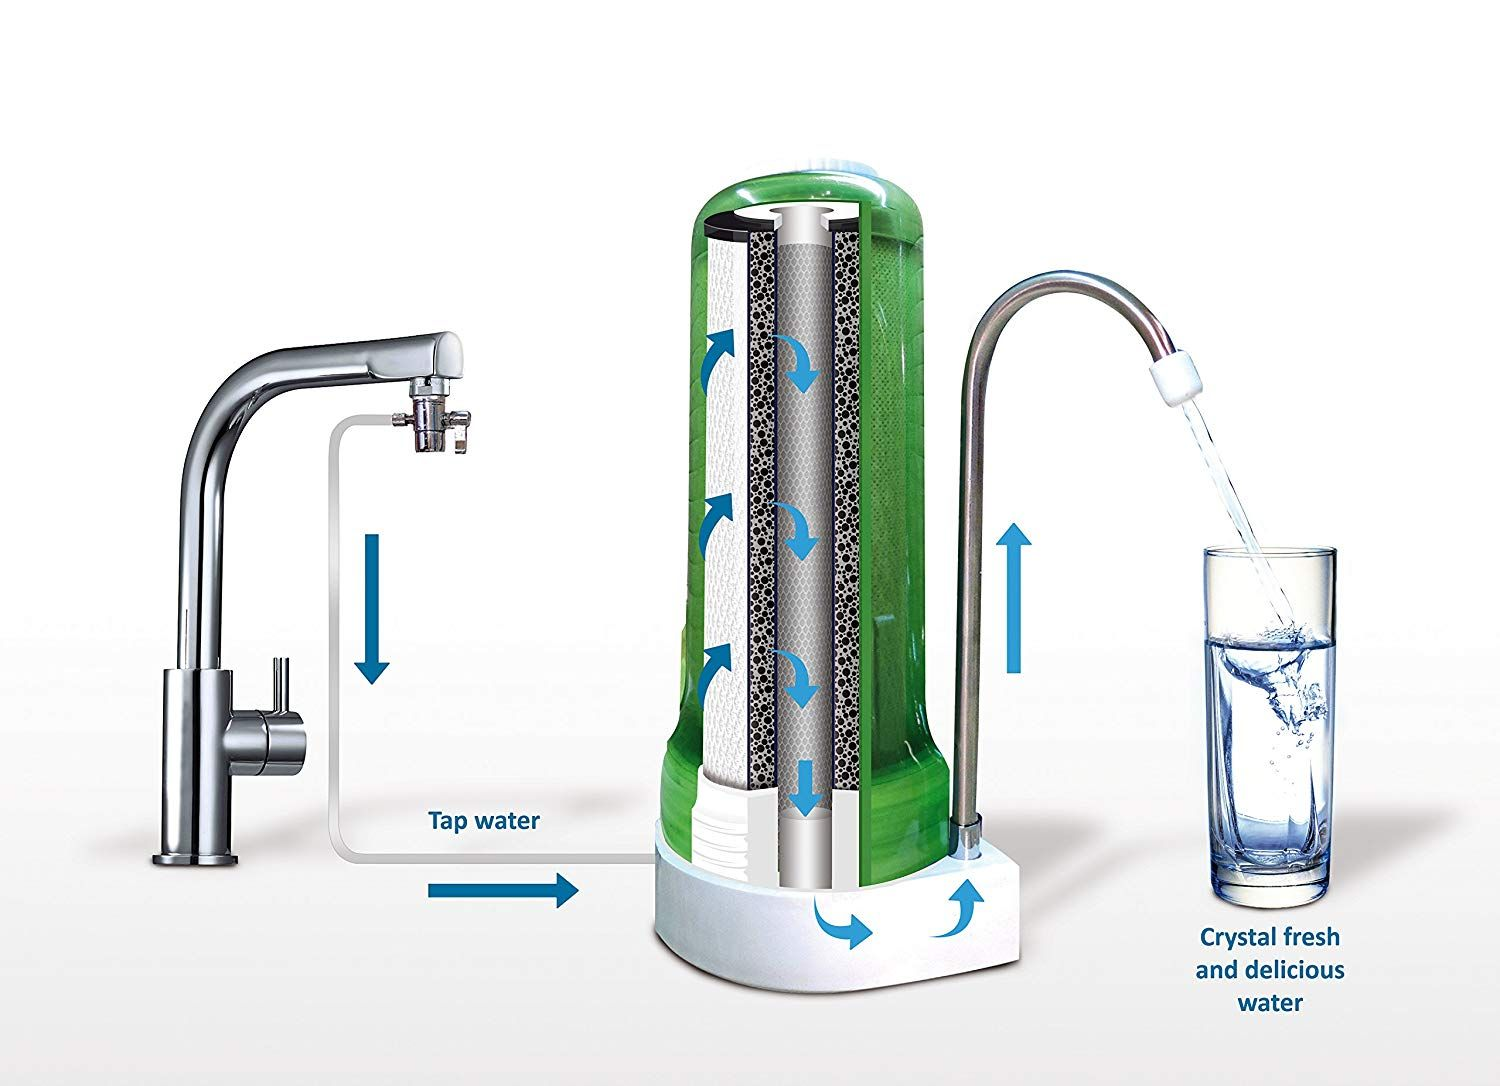 Countertop Water Filter Countertop water filter, Water